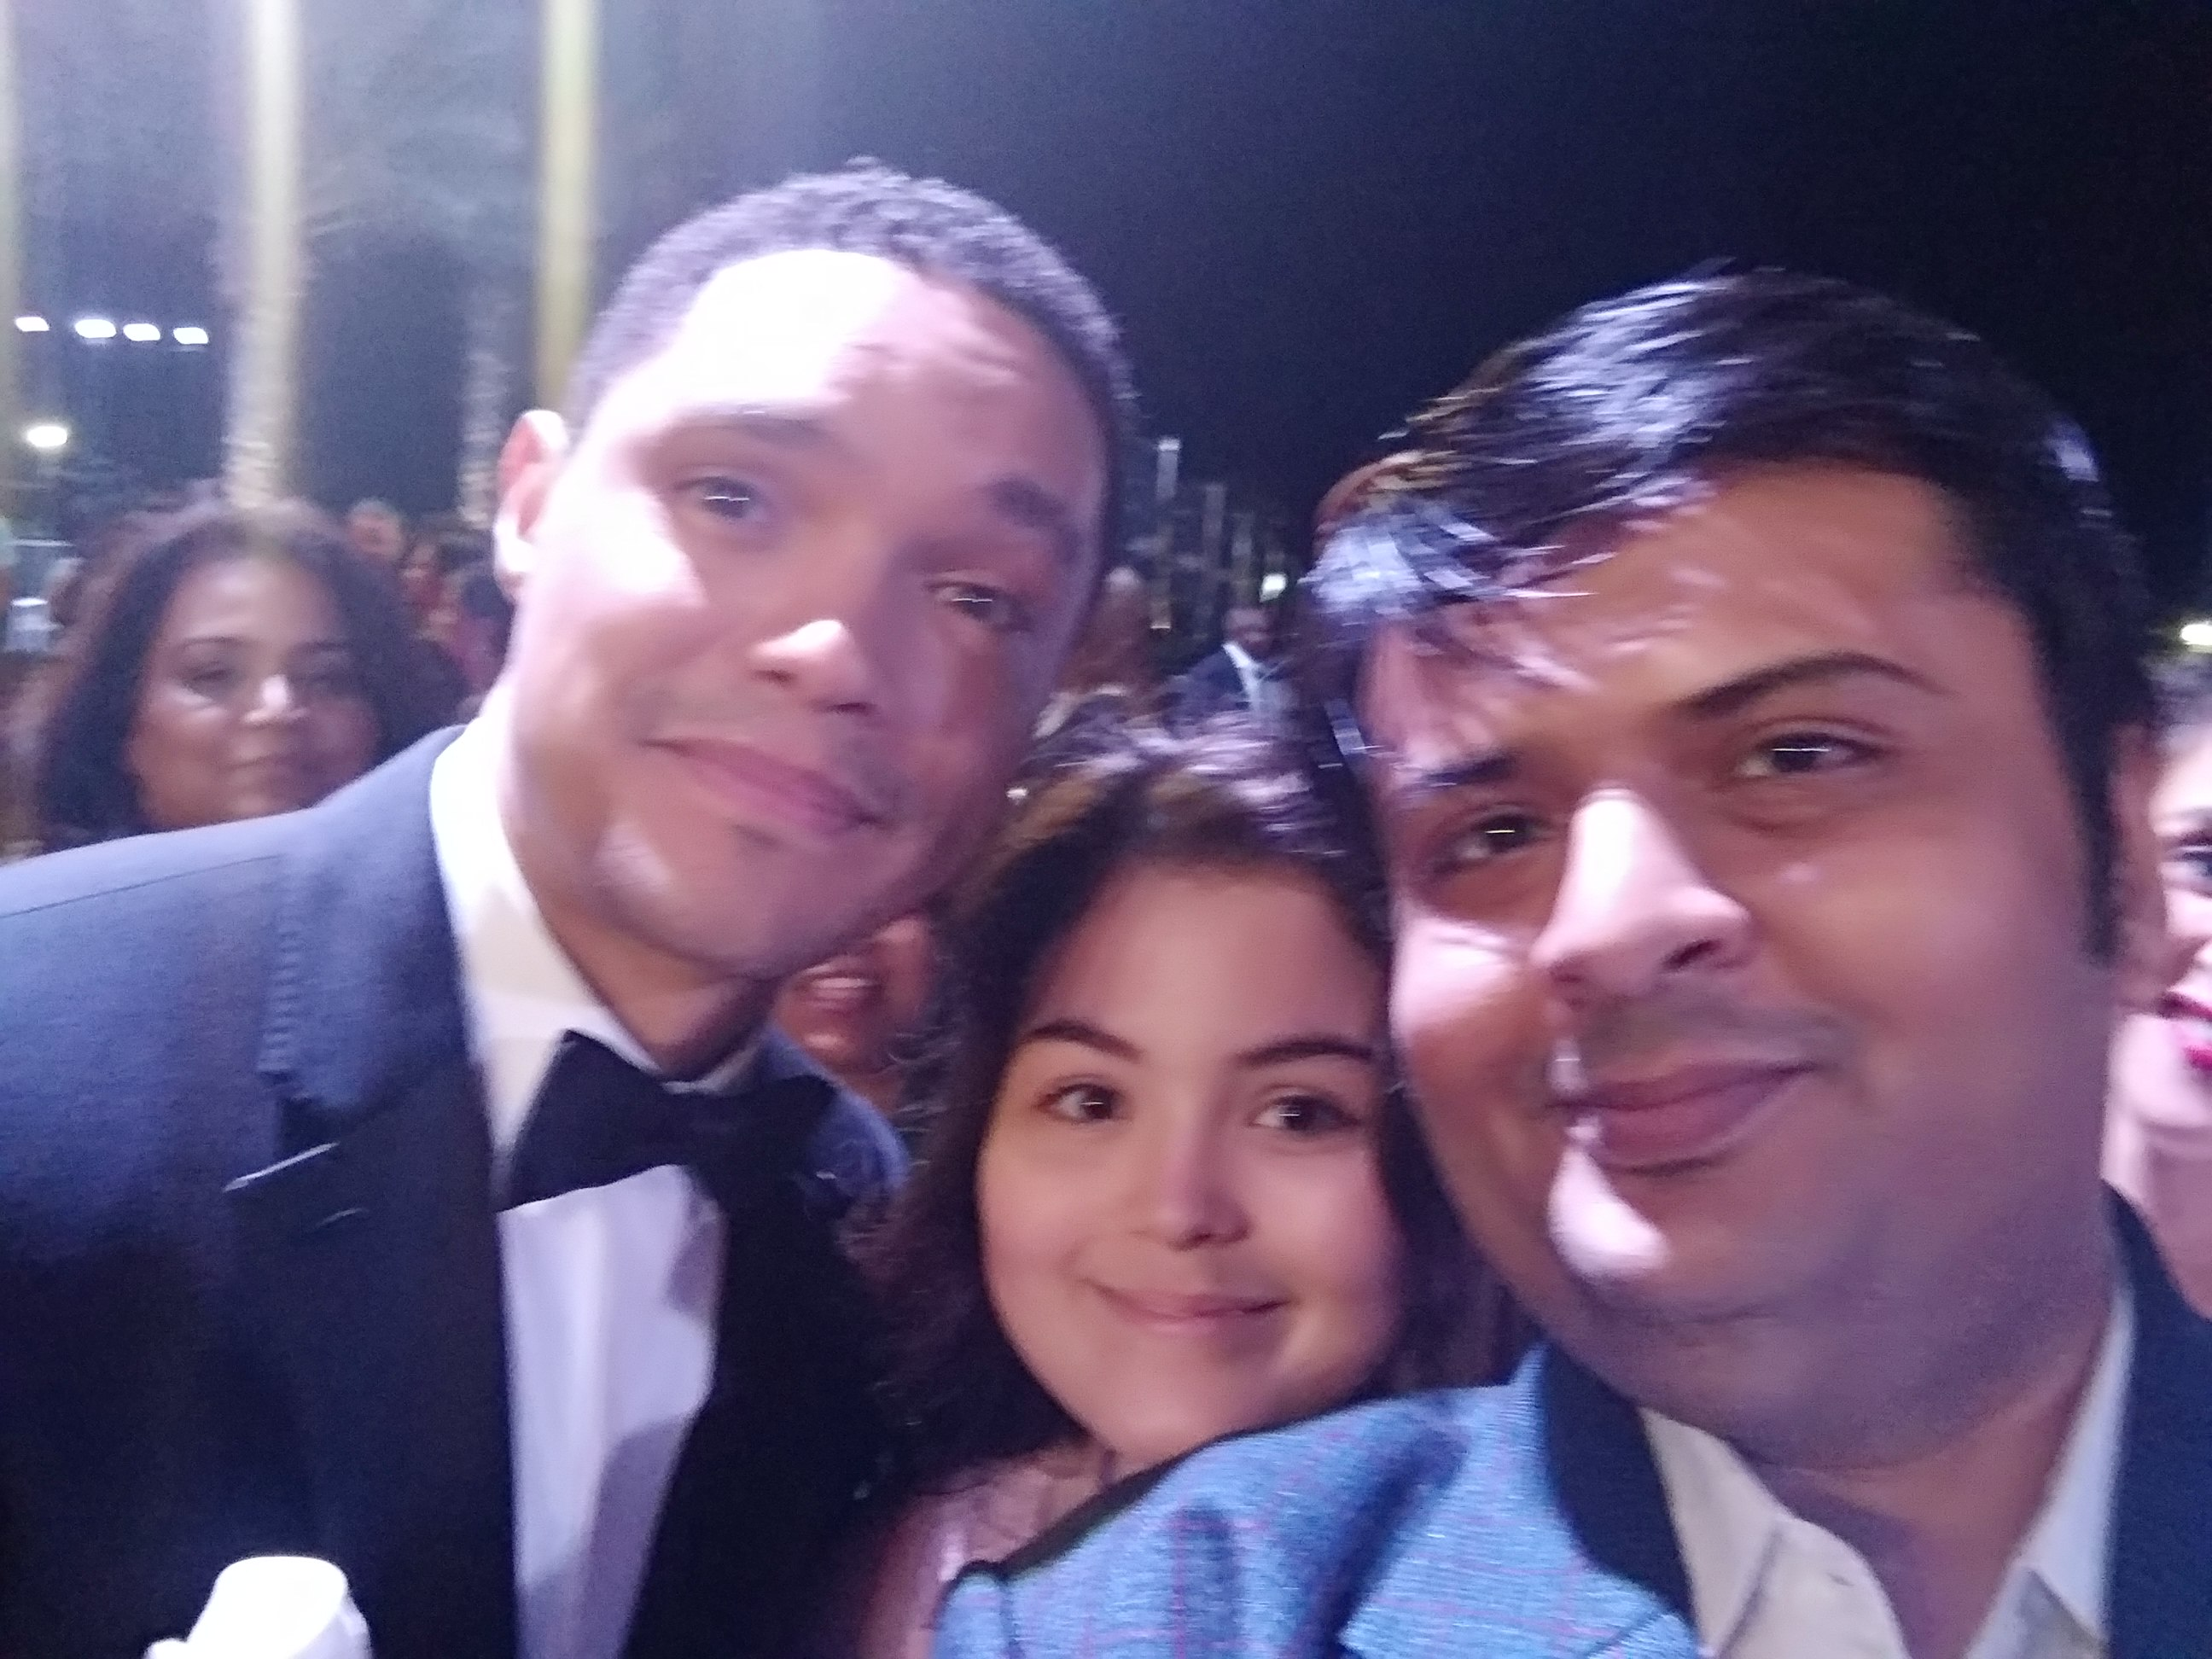 Dhaval with talk show host Trevor Noah